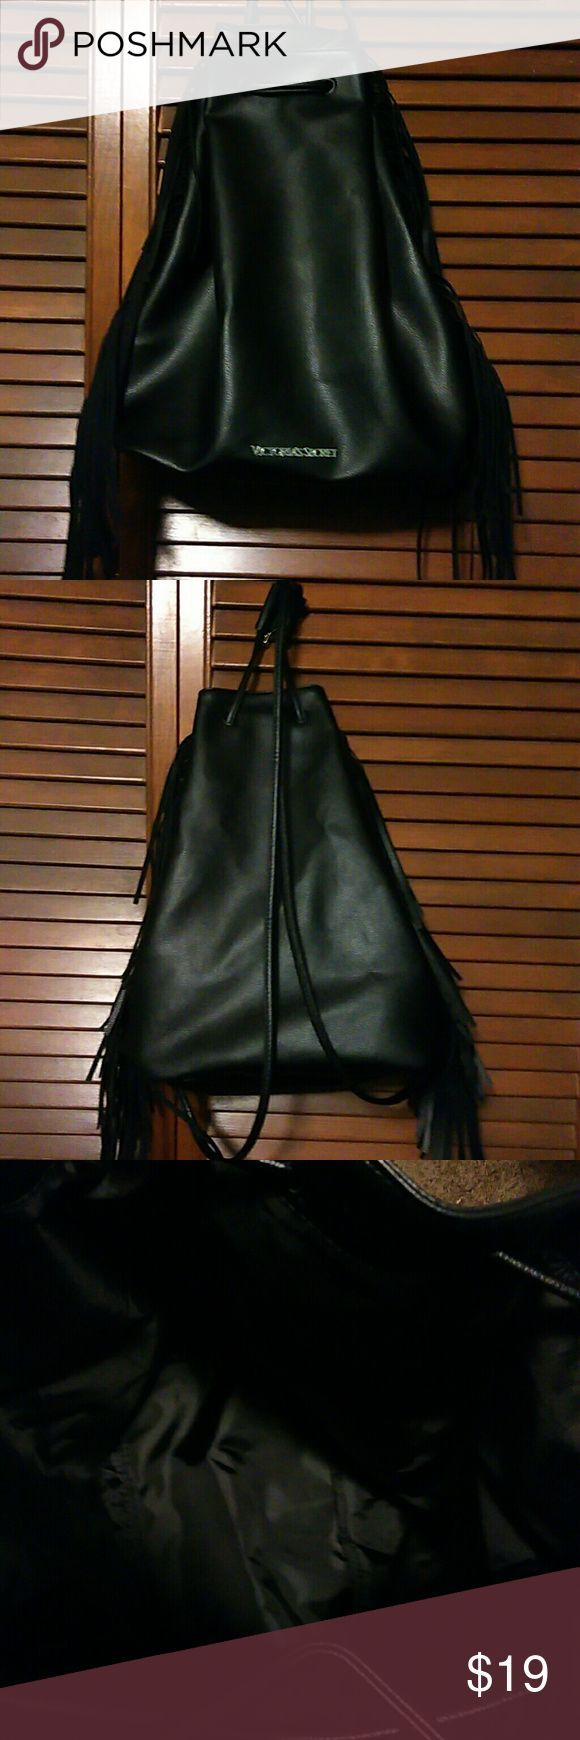 """Victoria's secret "" backpack Black , faux leather with fringe sides and an adjustable pull as a closure. Interior is an open space fully lined. L"